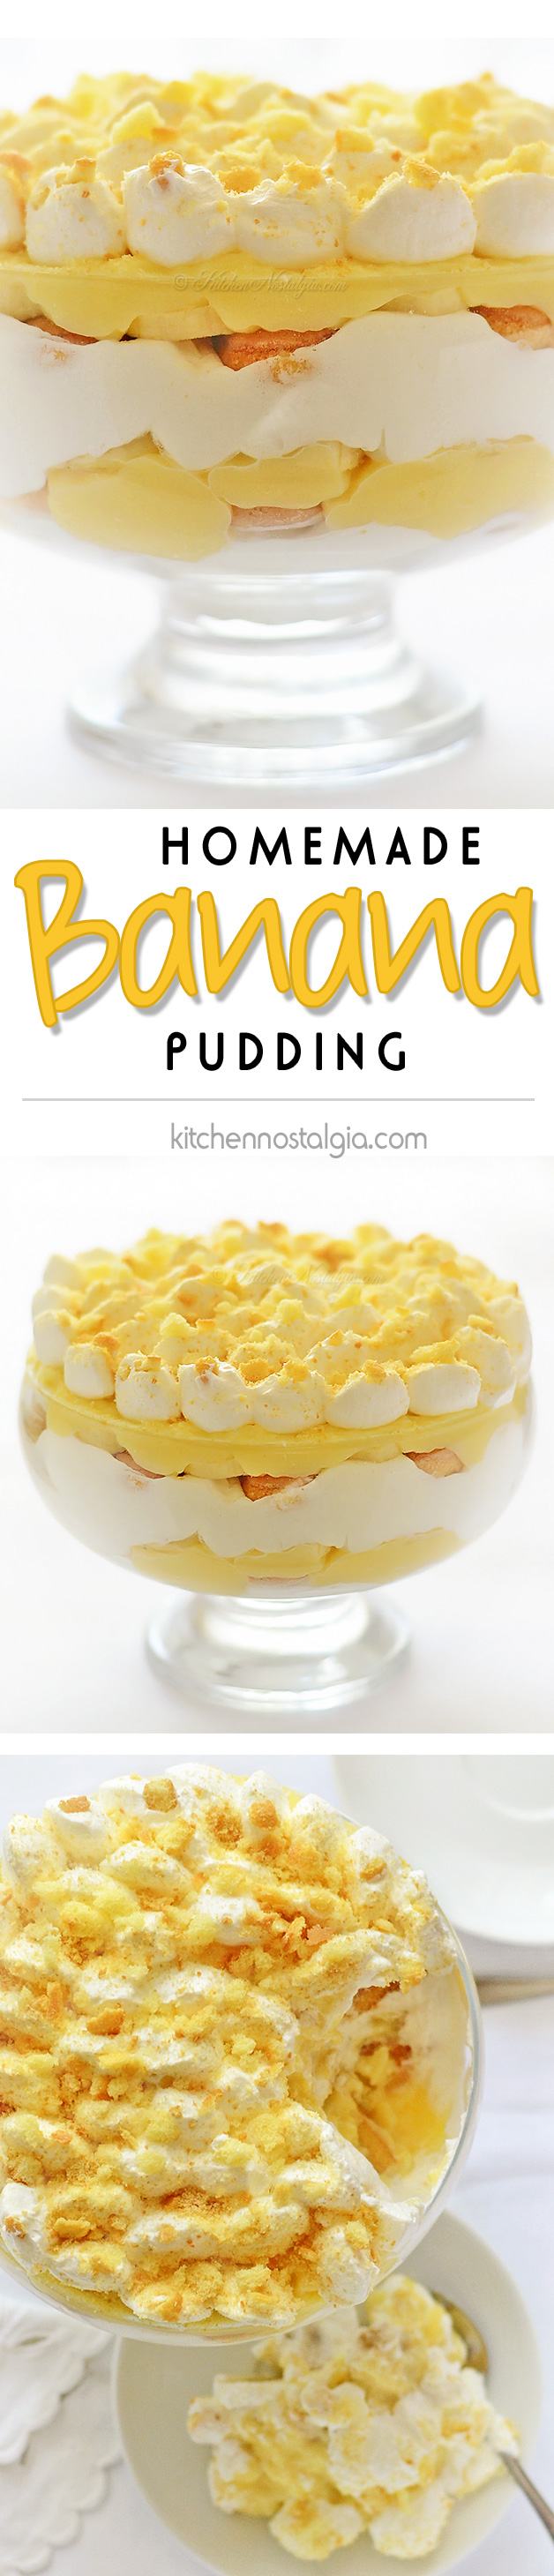 Homemade Banana Pudding - kitchennostalgia.com